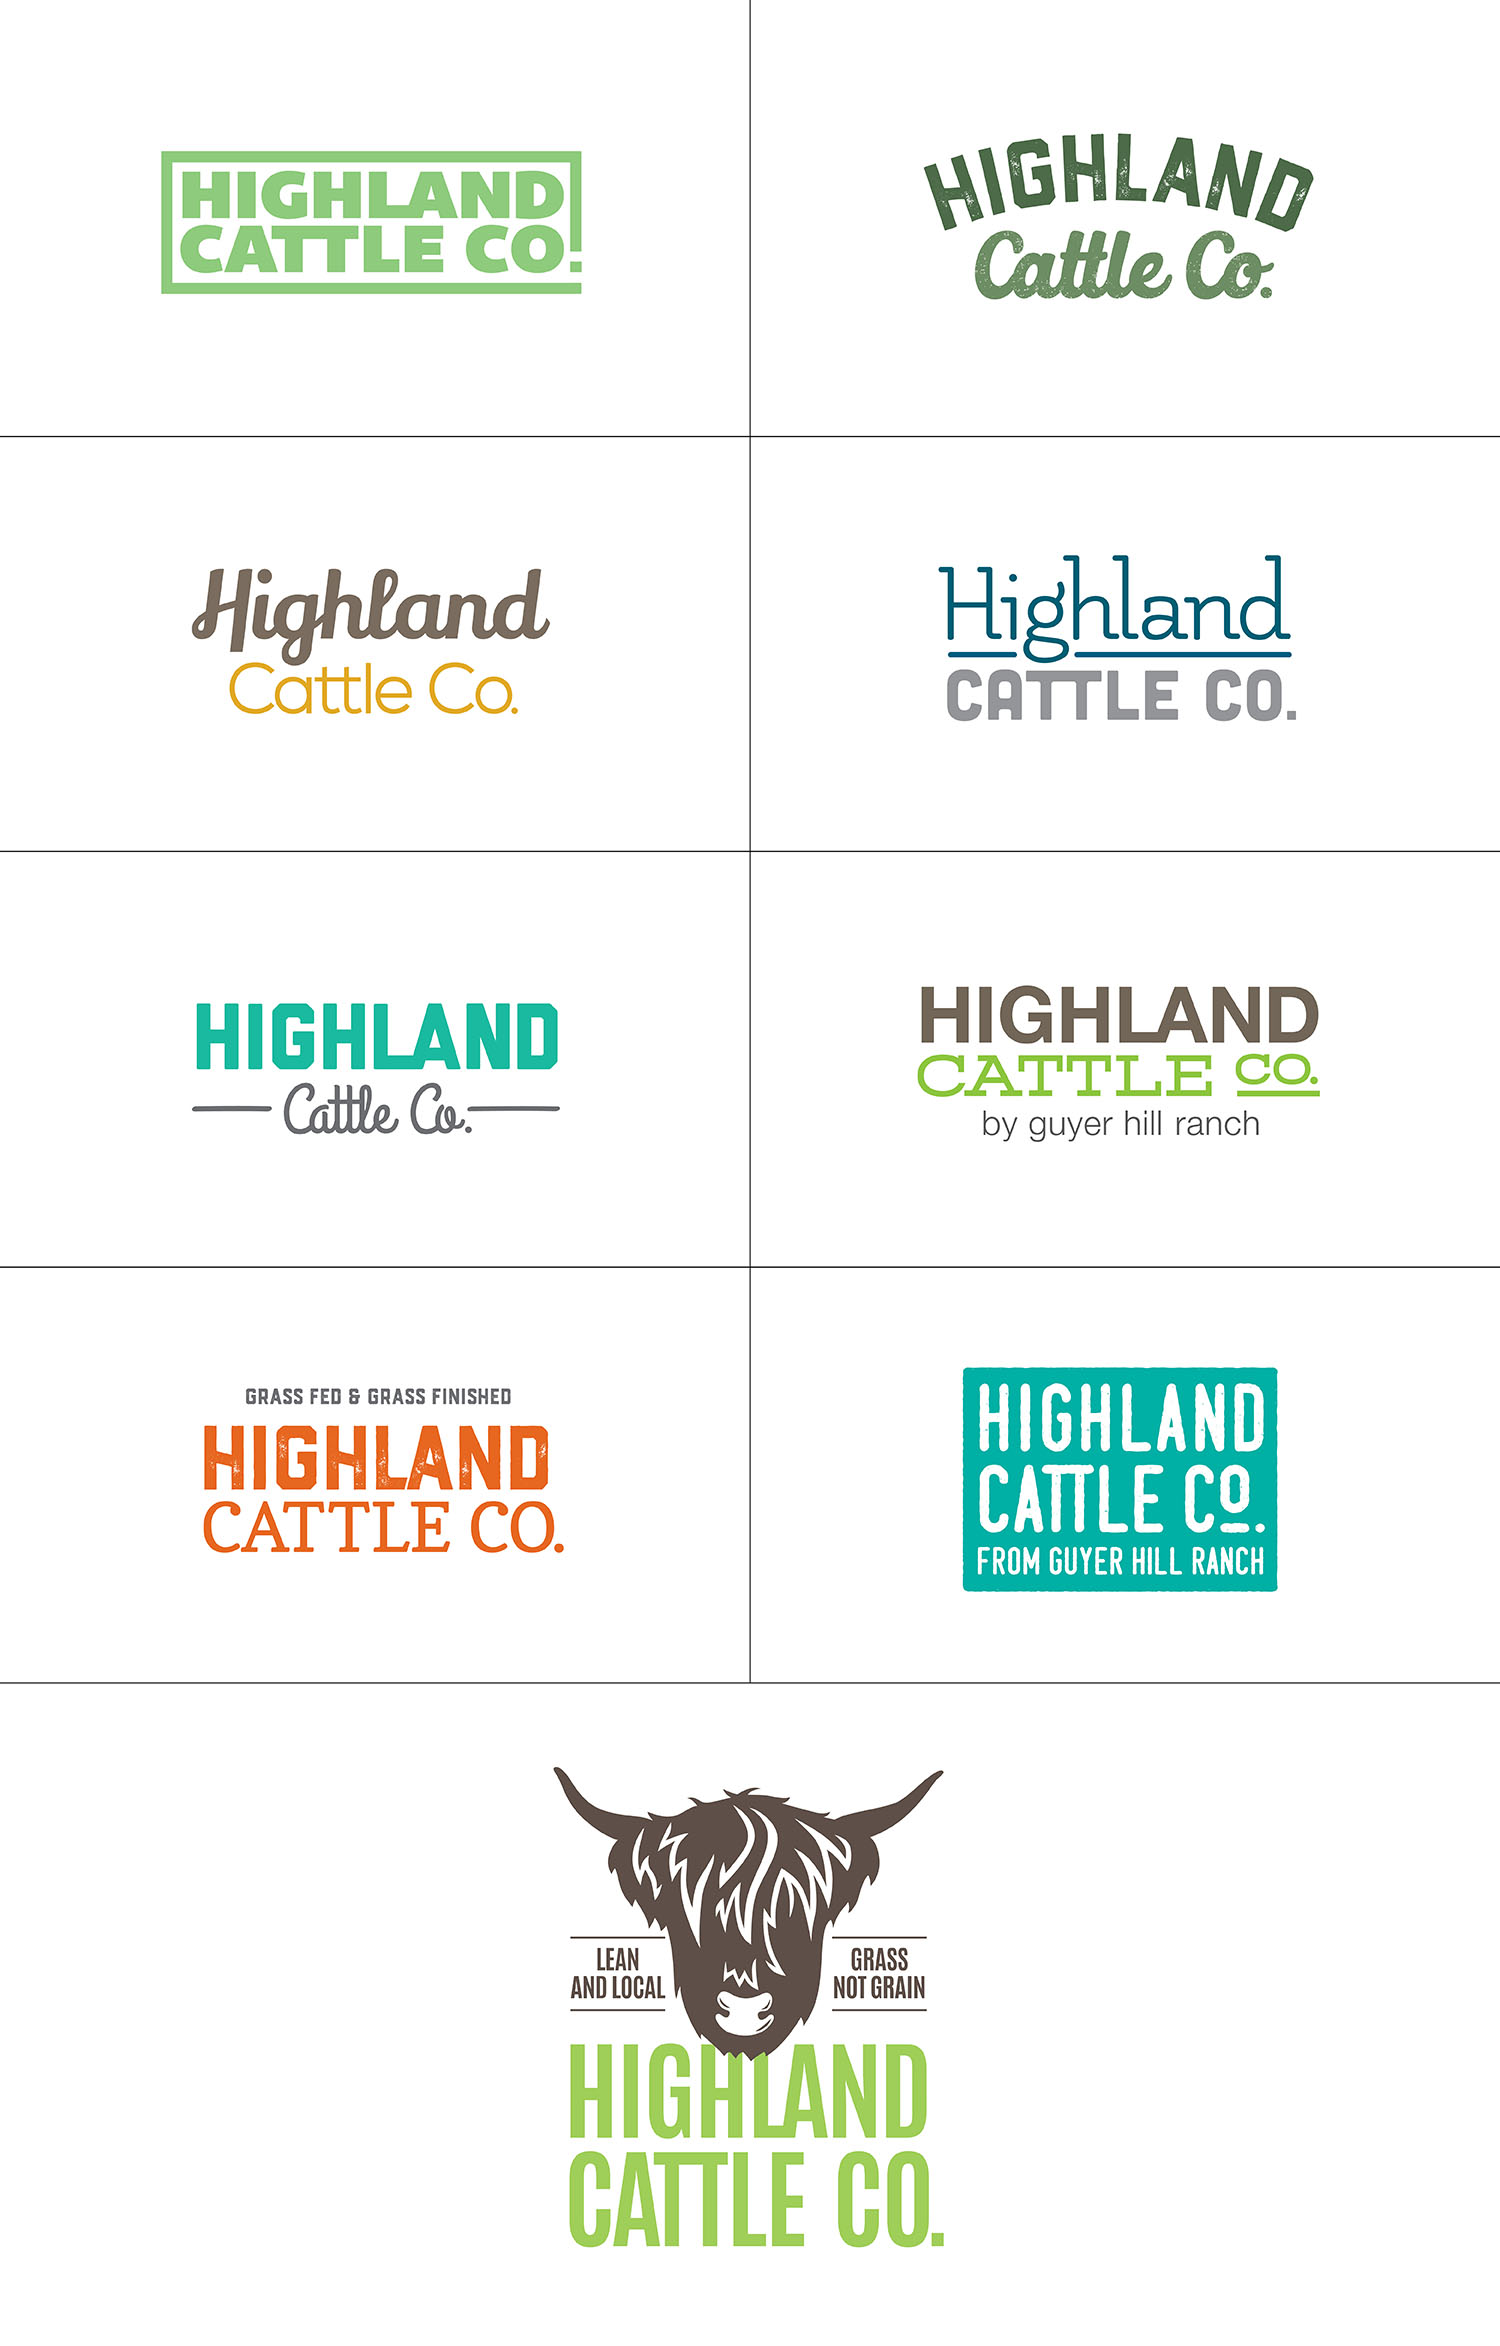 Highland Cattle Co. Logo Options